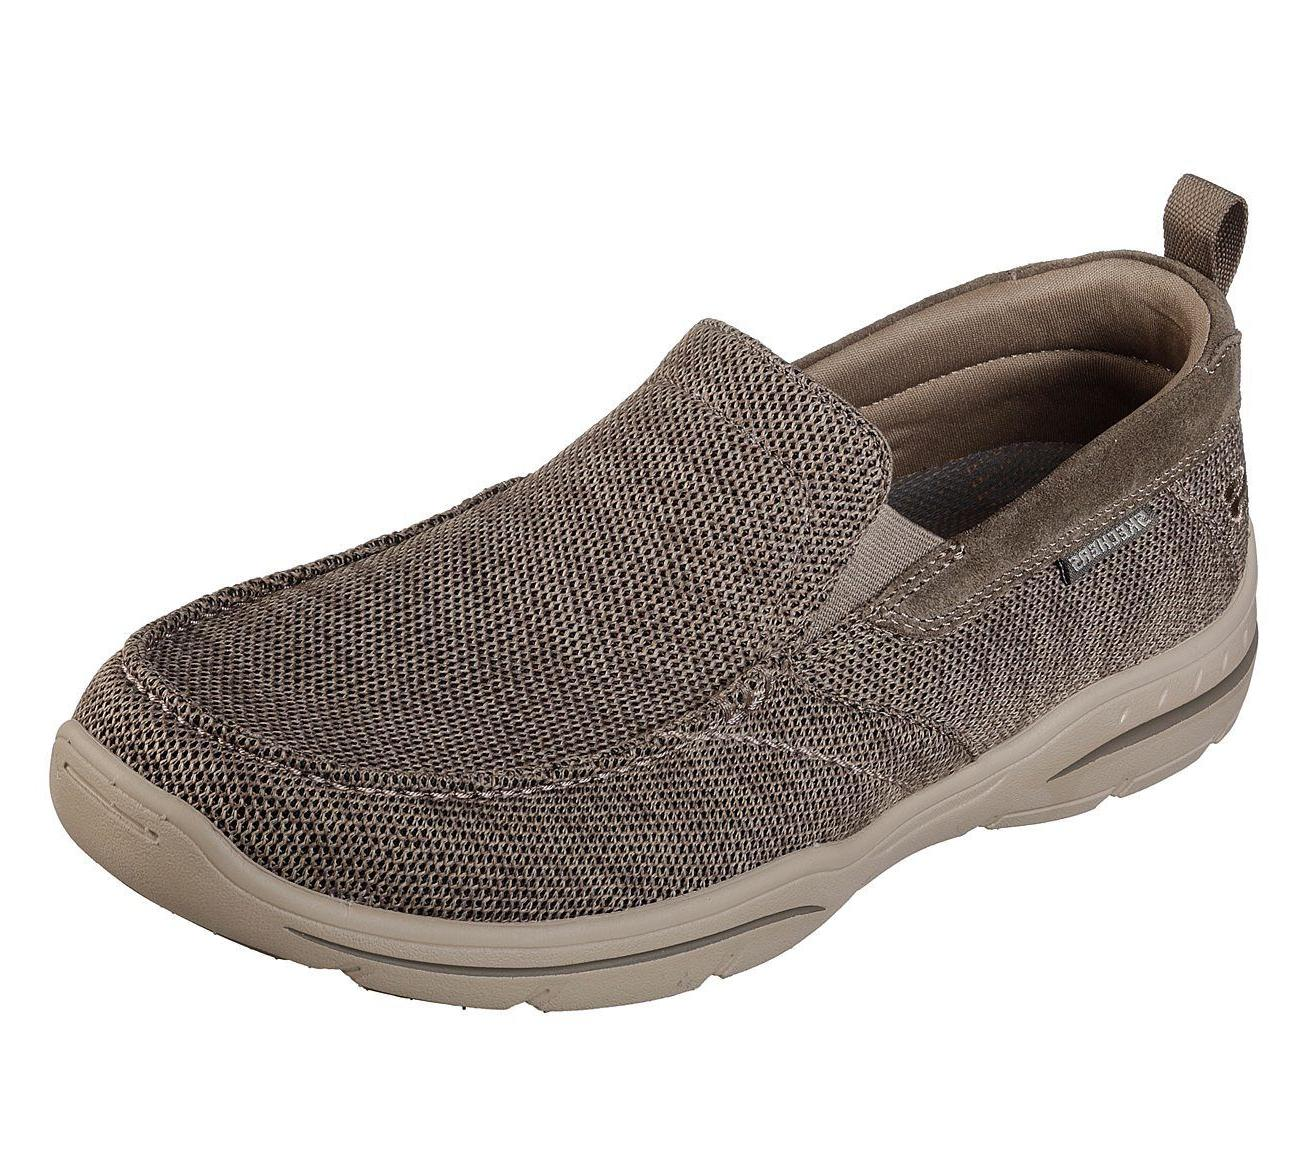 65626 taupe shoe men memory foam dress